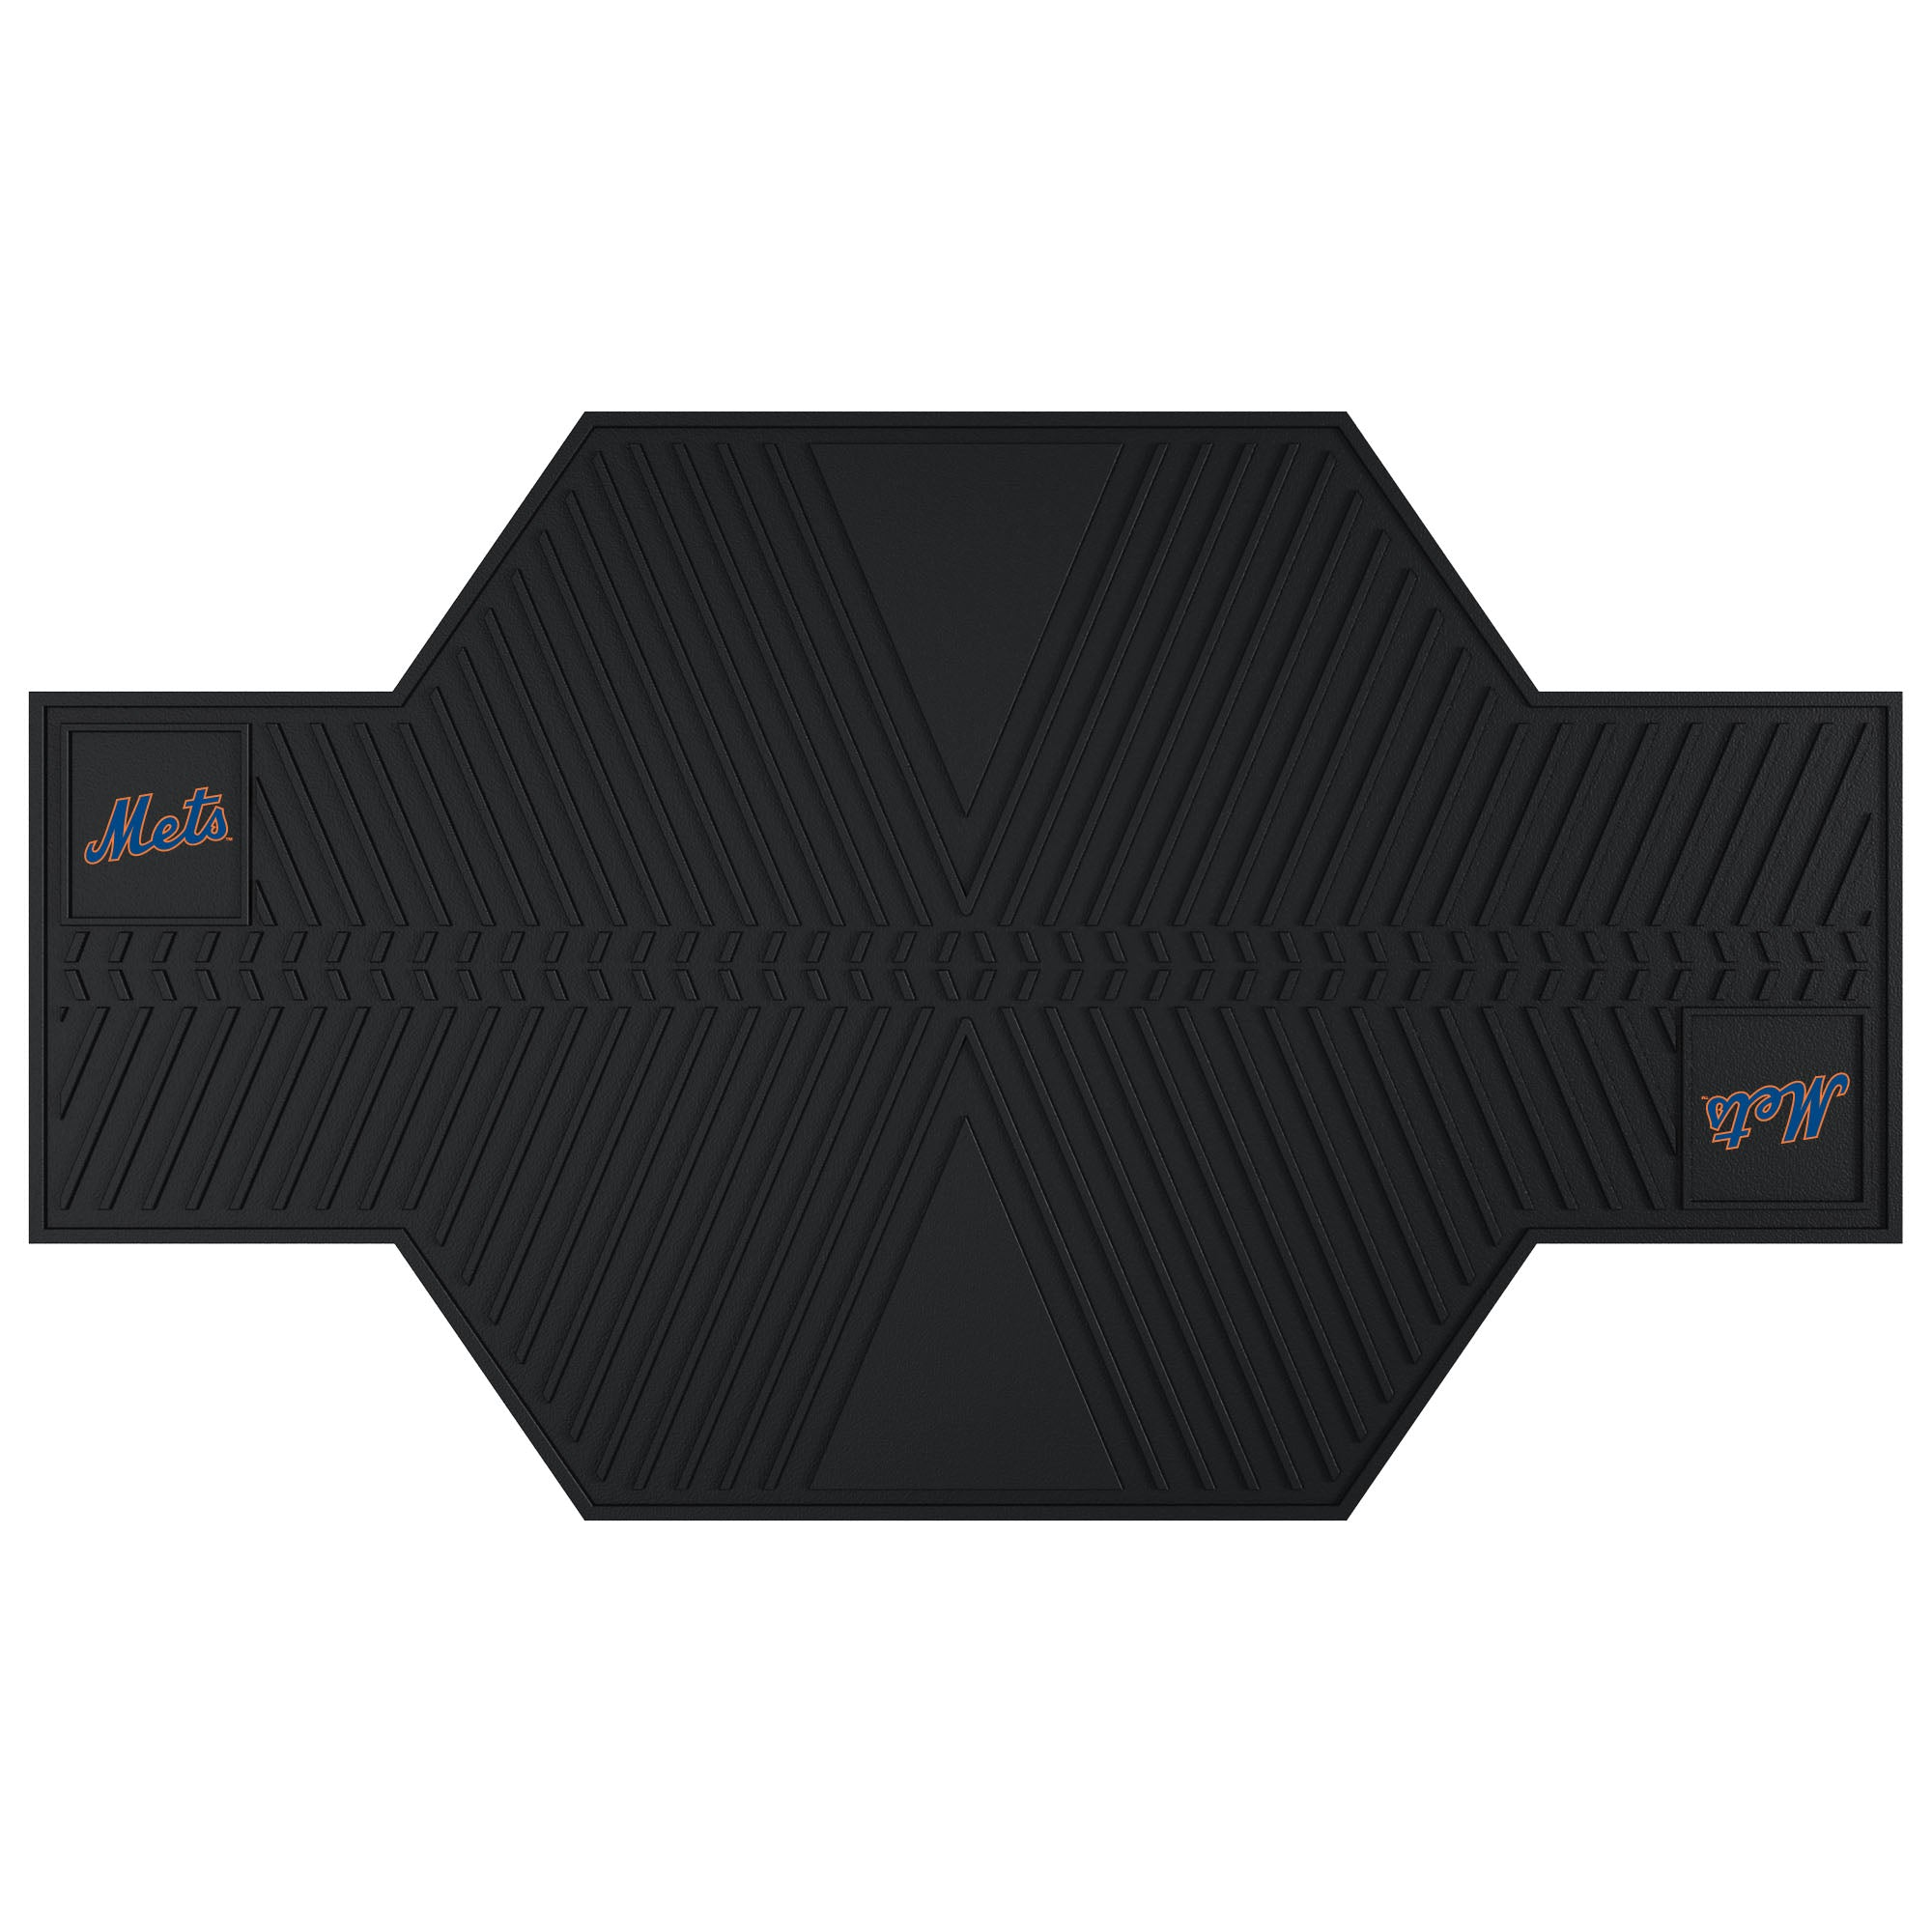 "MLB - New York Mets Motorcycle Mat 82.5""x42"""